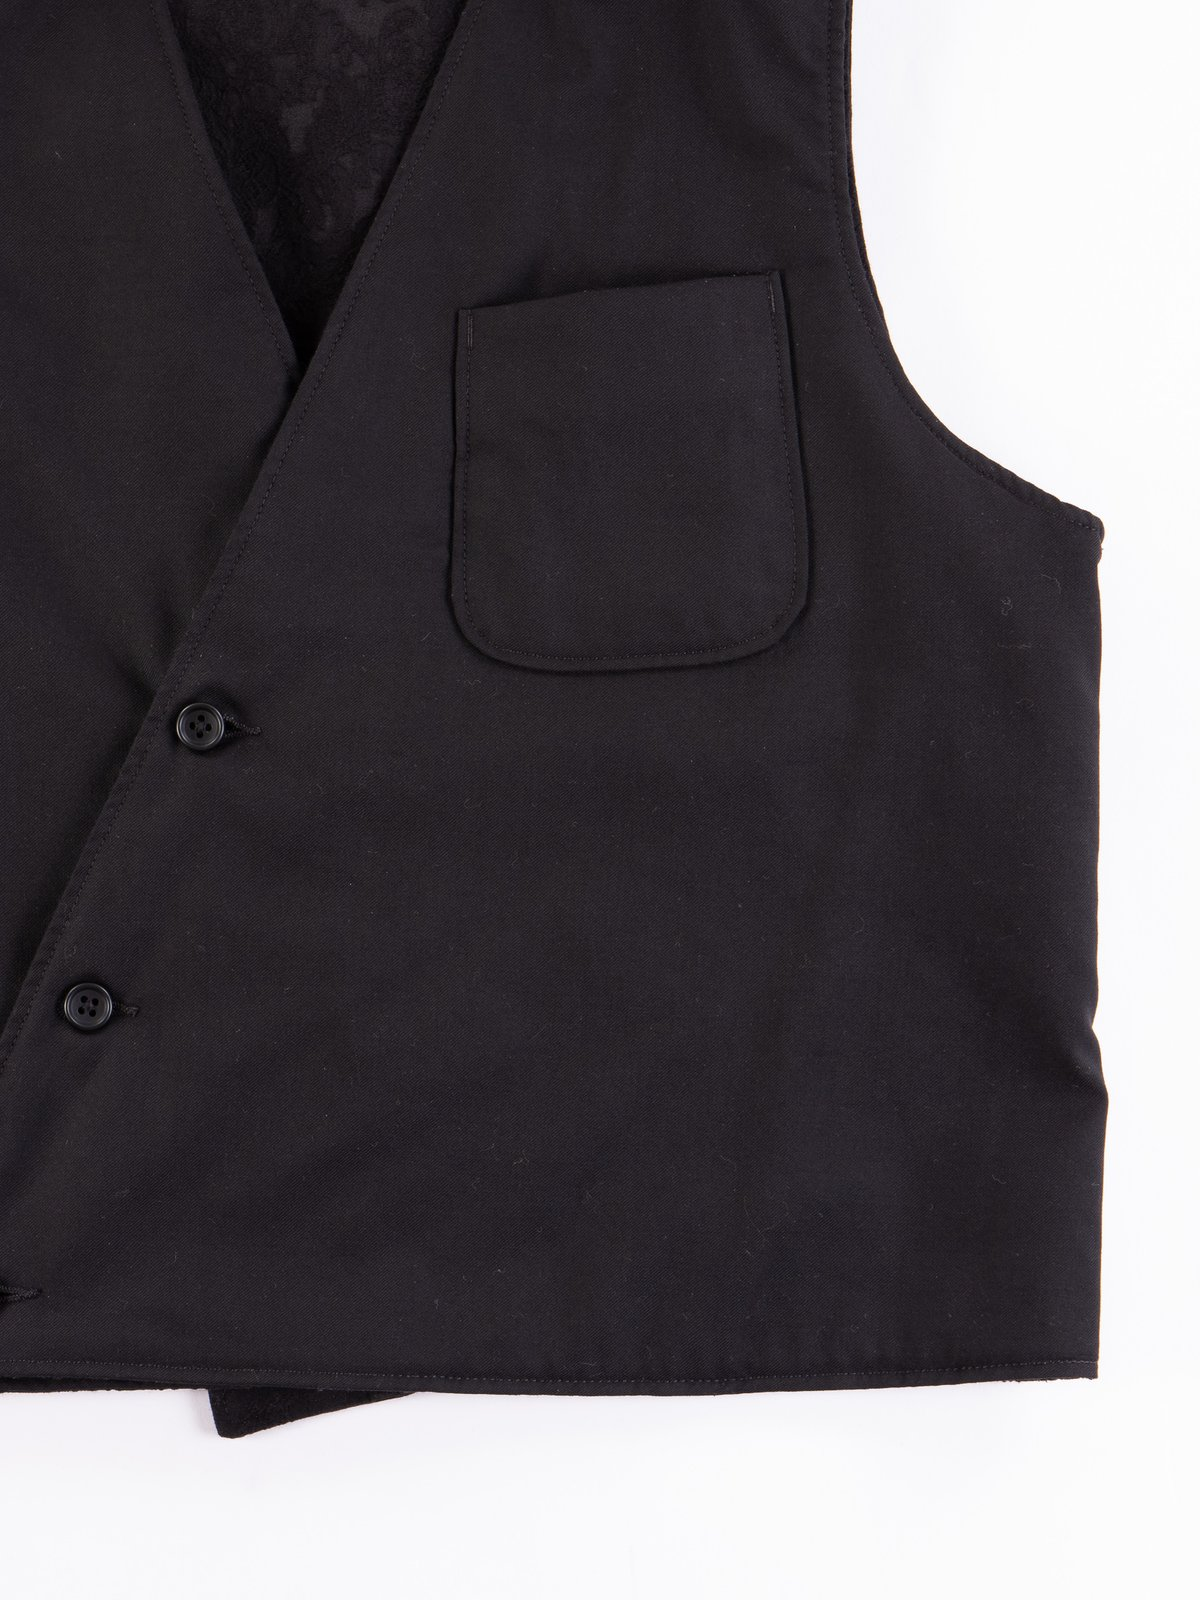 Black Worsted Wool Gabardine Reversible Vest - Image 4